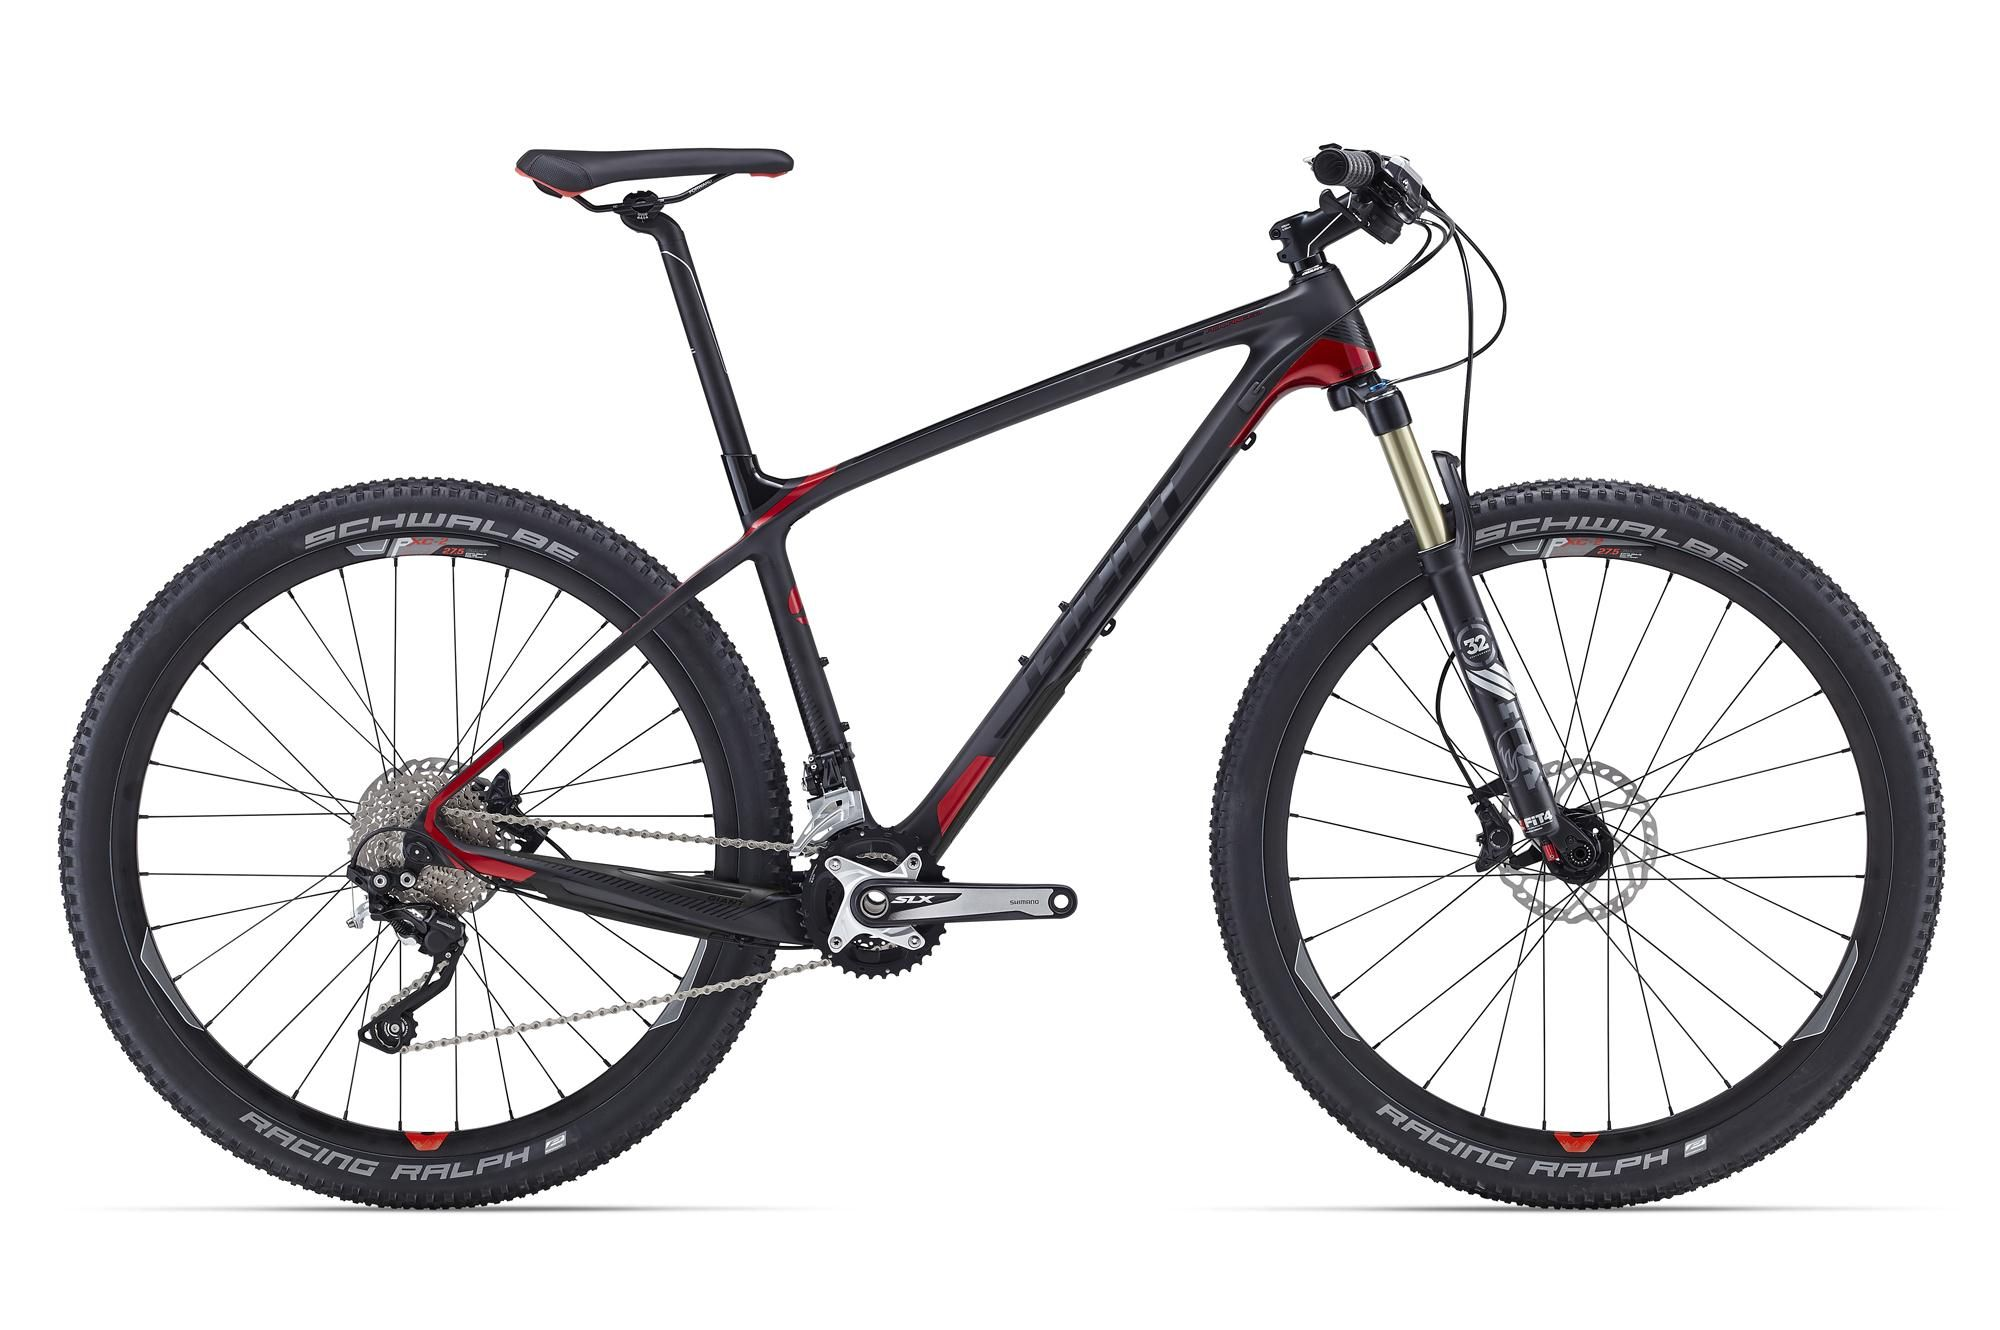 Велосипед Giant XtC Advanced 27.5 2 2016 велосипед giant xtc composite 1 2013